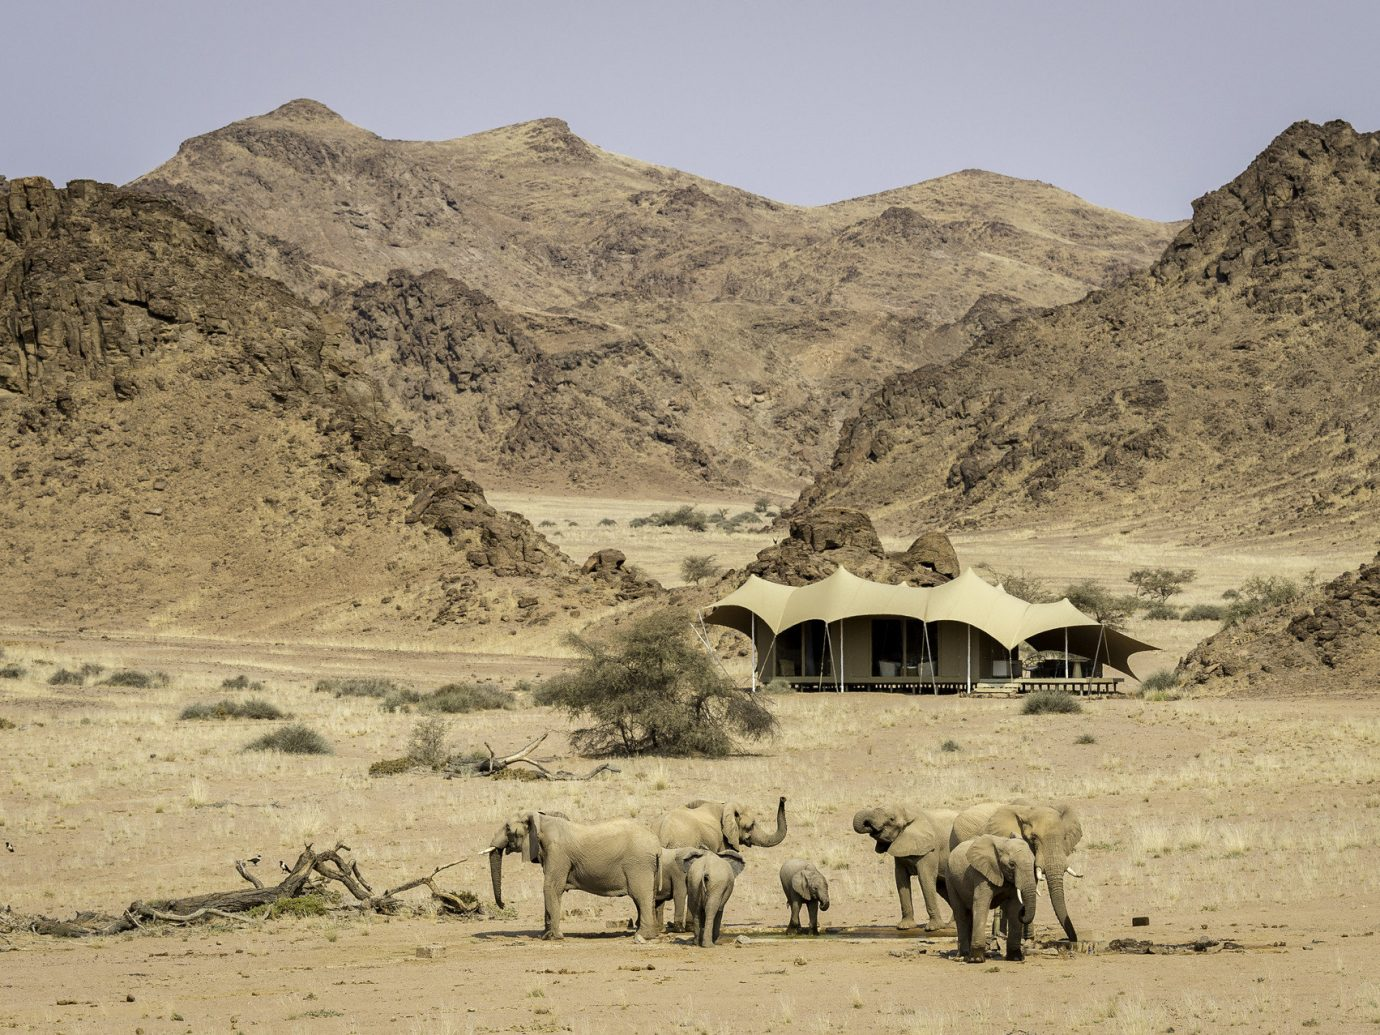 Spring Trips Trip Ideas outdoor mountain sky natural environment wilderness animal mammal wadi steppe Desert herd landscape aeolian landform plateau valley sand Camel Adventure sahara Safari dirt